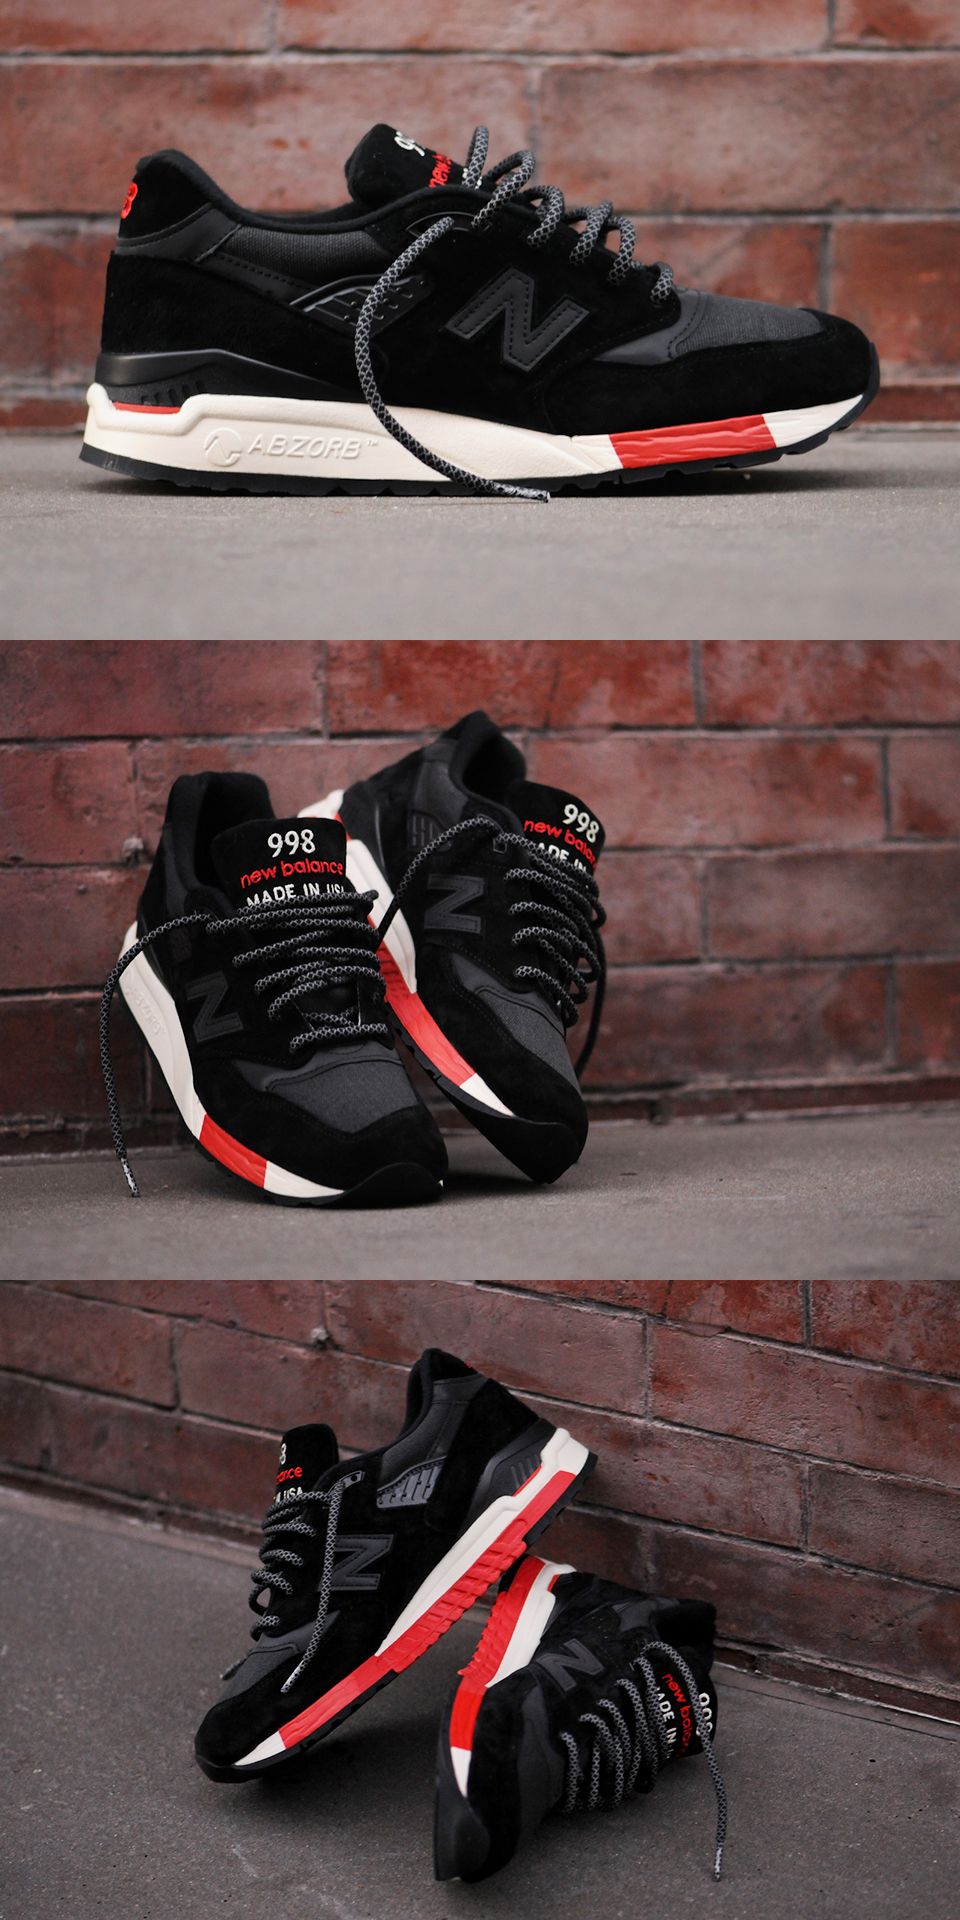 New Balance 998 - Black Red Kith NYC Exclusive  sneakersfashion ... 46a540709f0